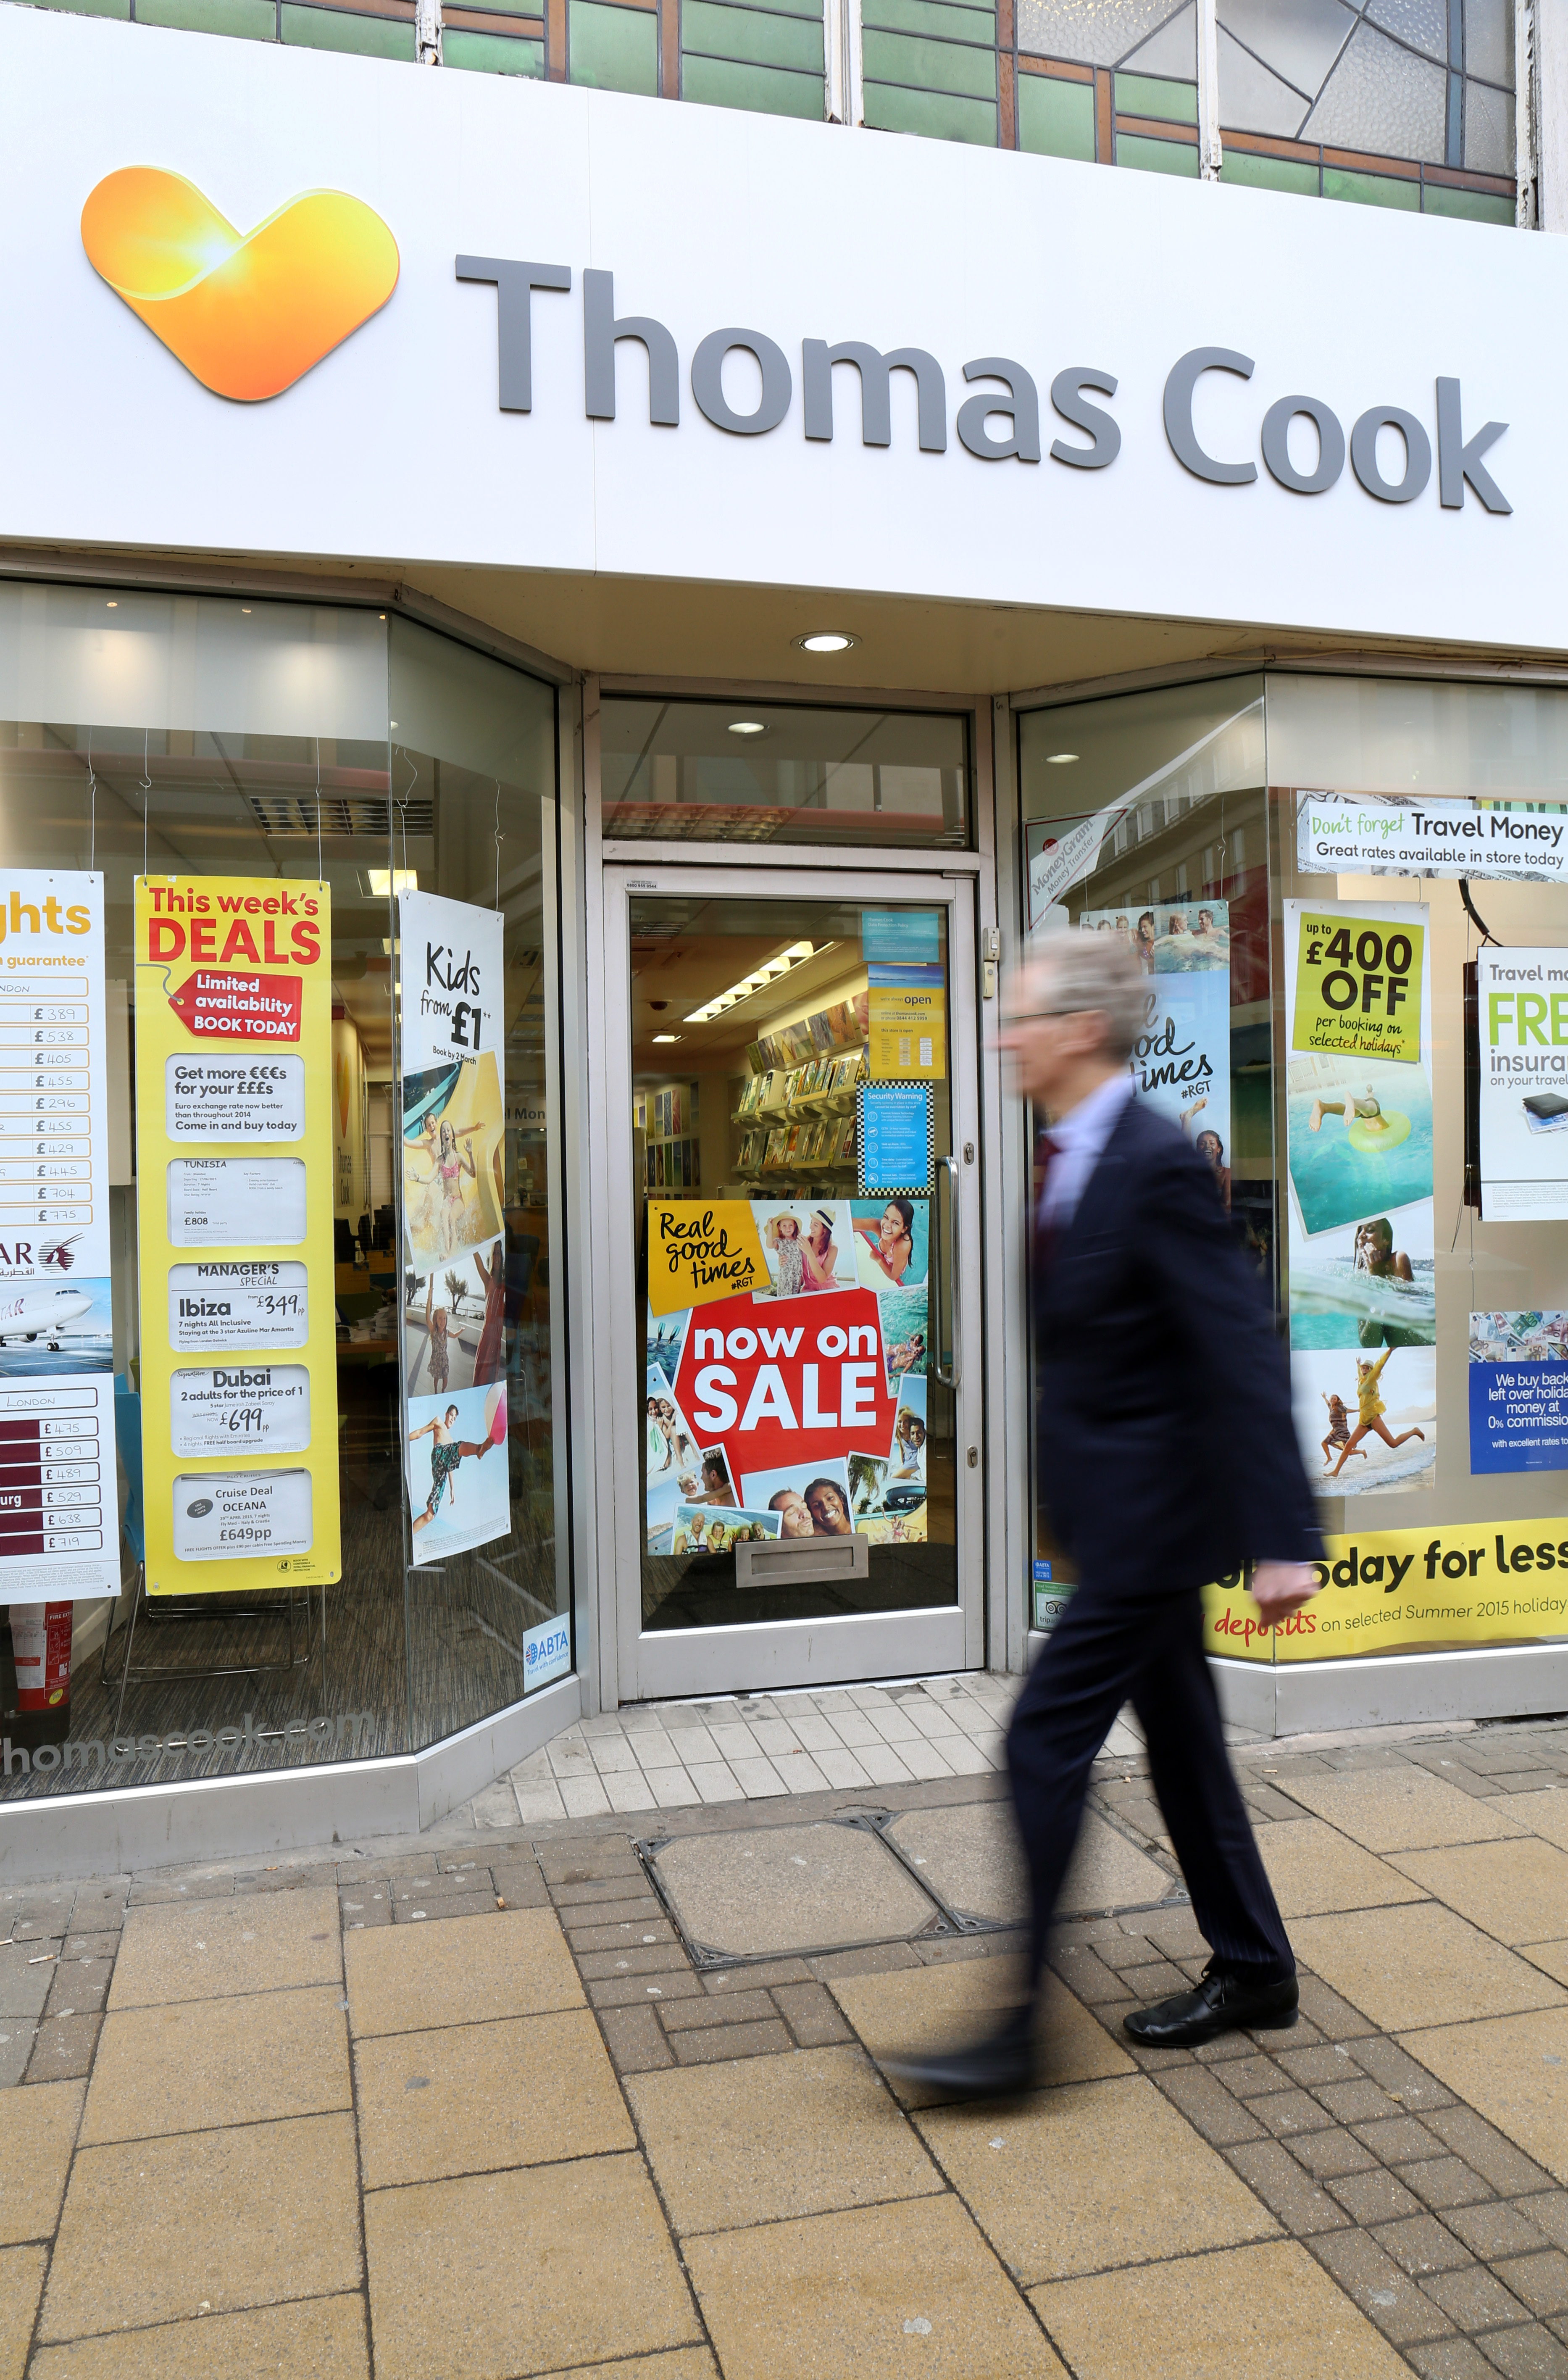 Thomas Cook is one of the few travel firms to still have high street stores. Credit: PA